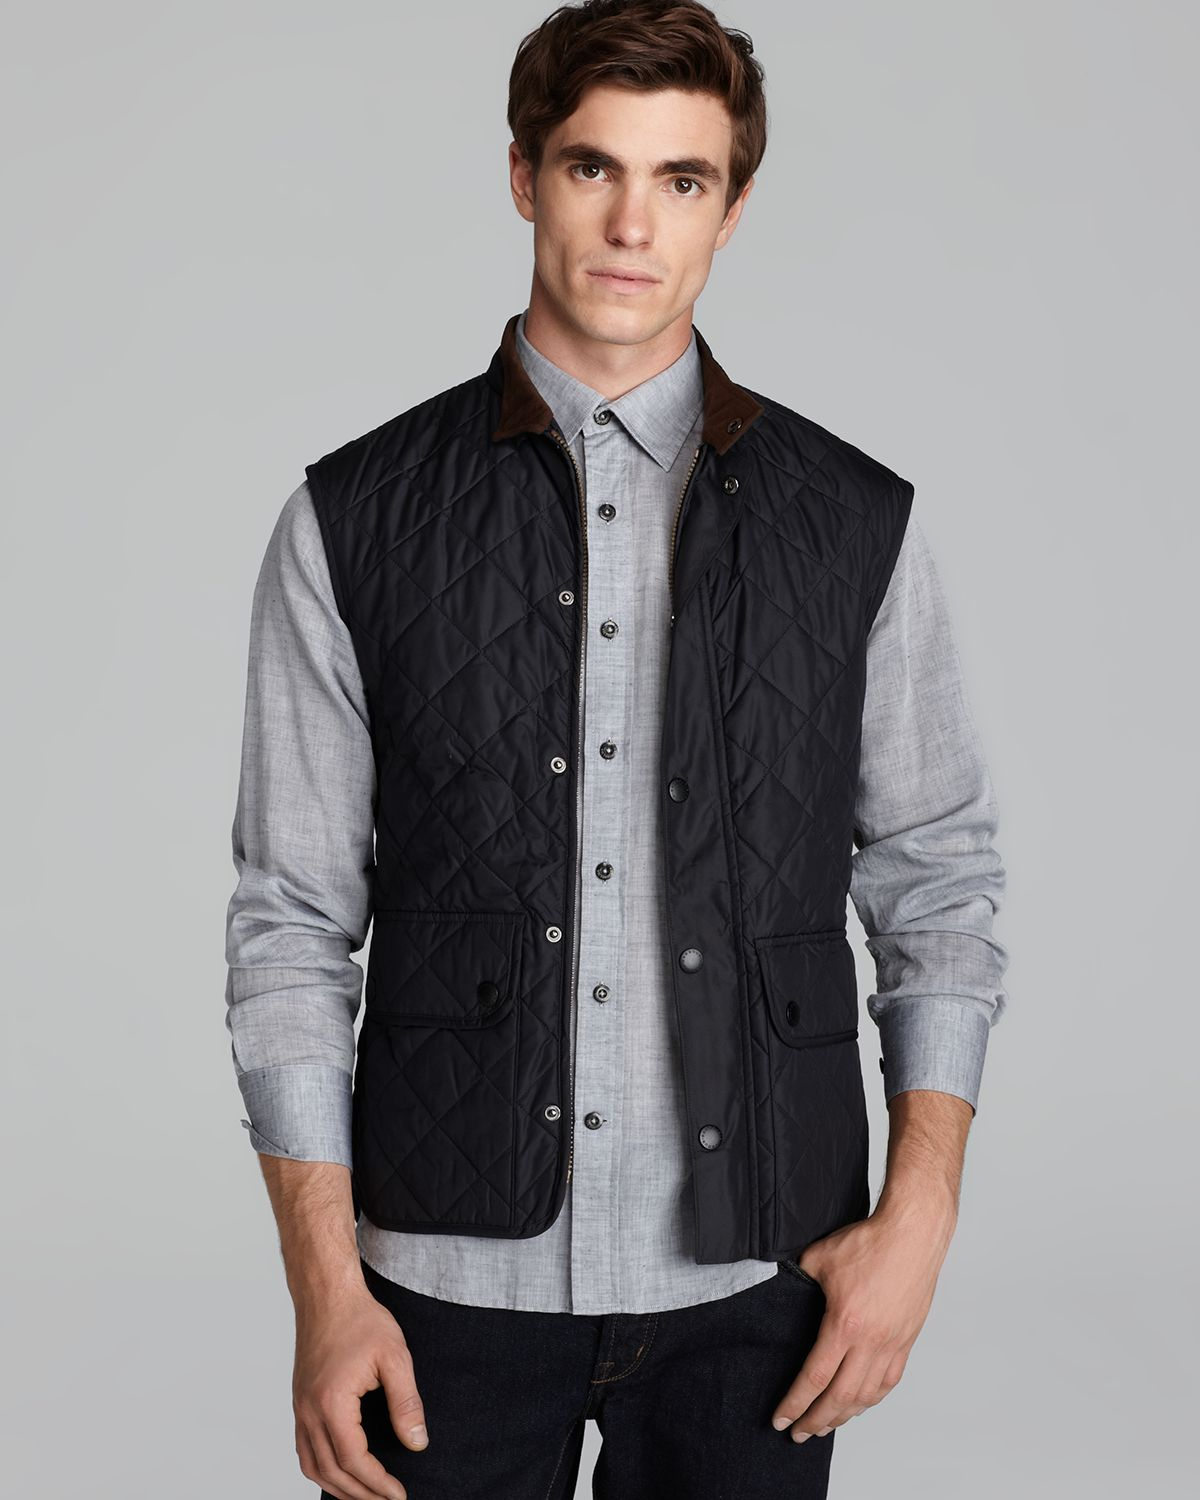 Barbour Lowerdale Gilet Vest